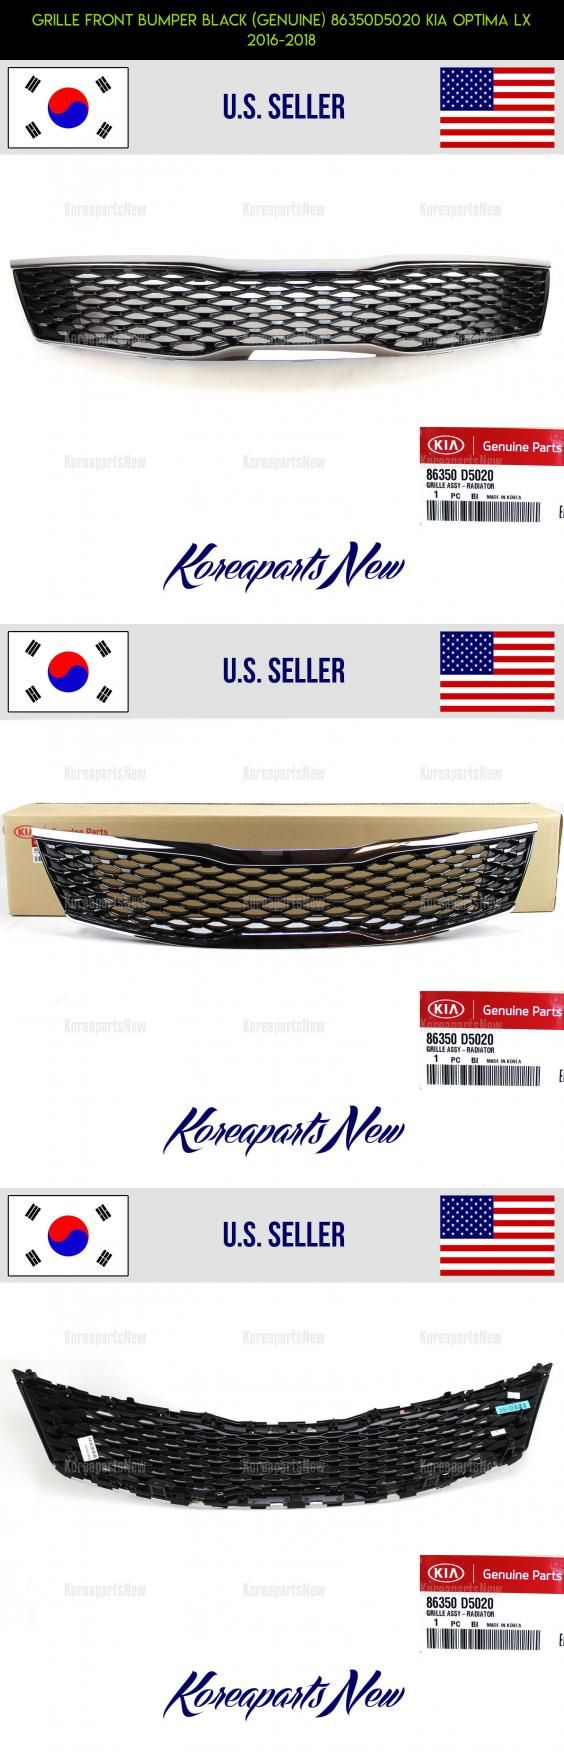 GRILLE FRONT BUMPER BLACK (GENUINE) 86350D5020 KIA OPTIMA LX 2016-2018 #shopping #kit #technology #tech #grills #products #d #racing #gadgets #plans #drone #parts #camera #fpv